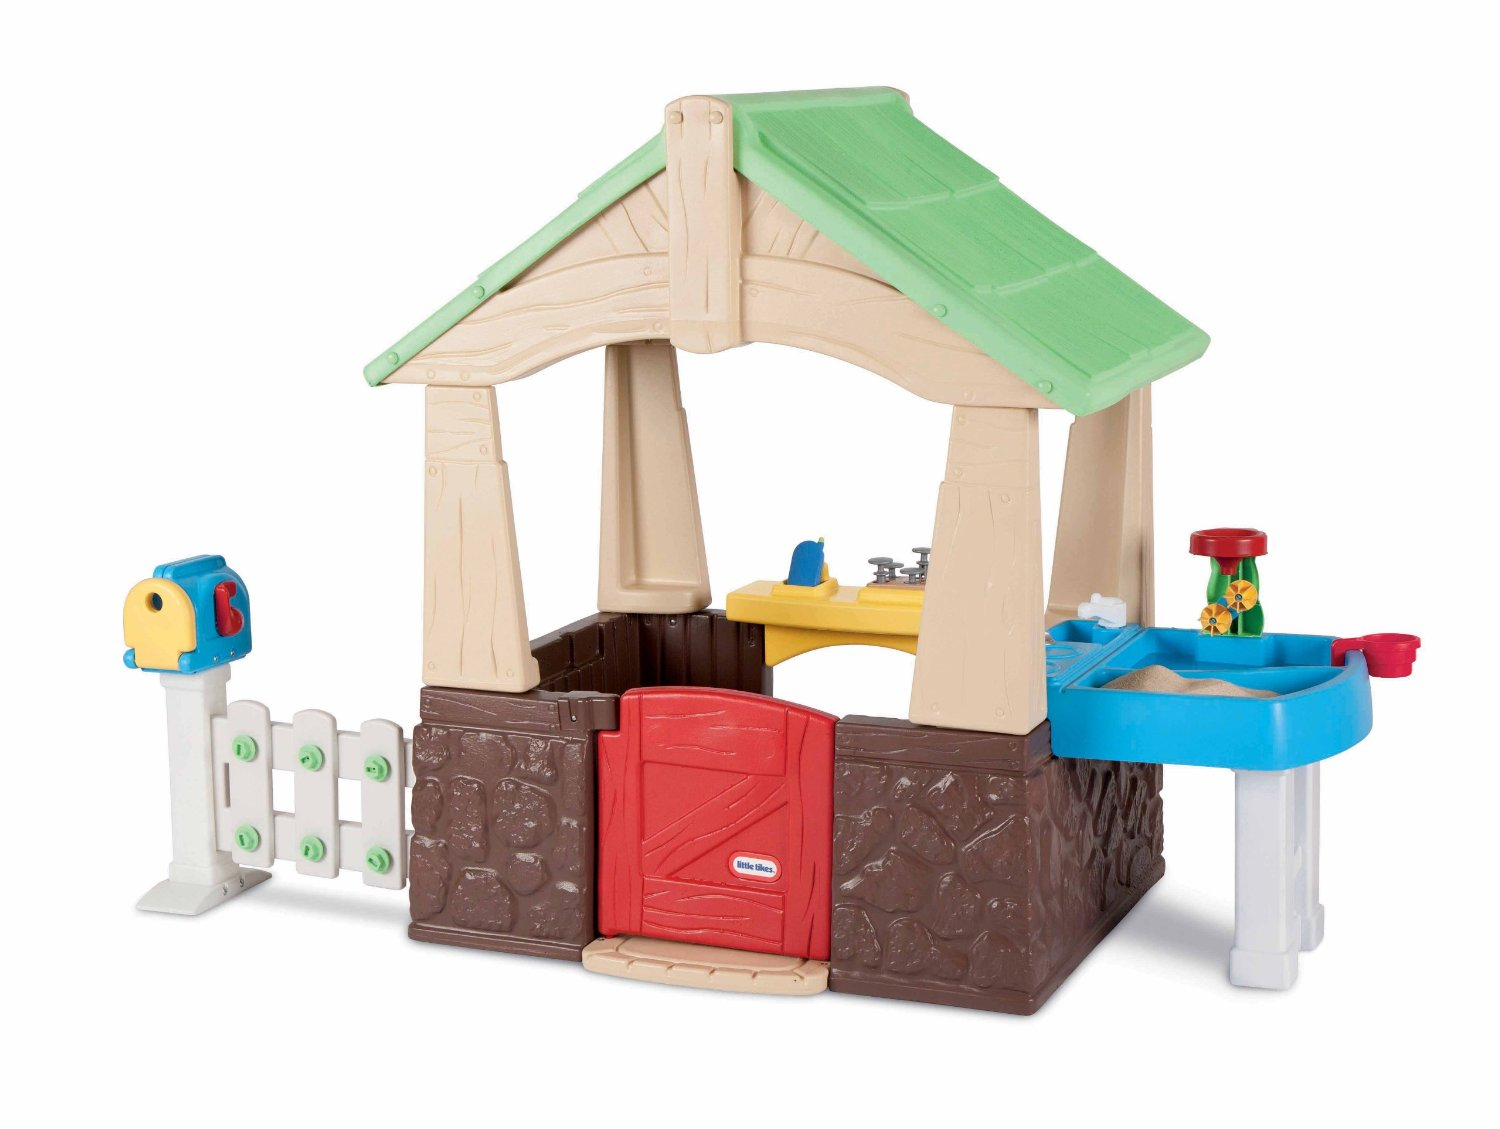 Wonderful Little Tikes Playhouse Made Of Plastic With Green Roof And Pedestal For Kids Toy Ideas